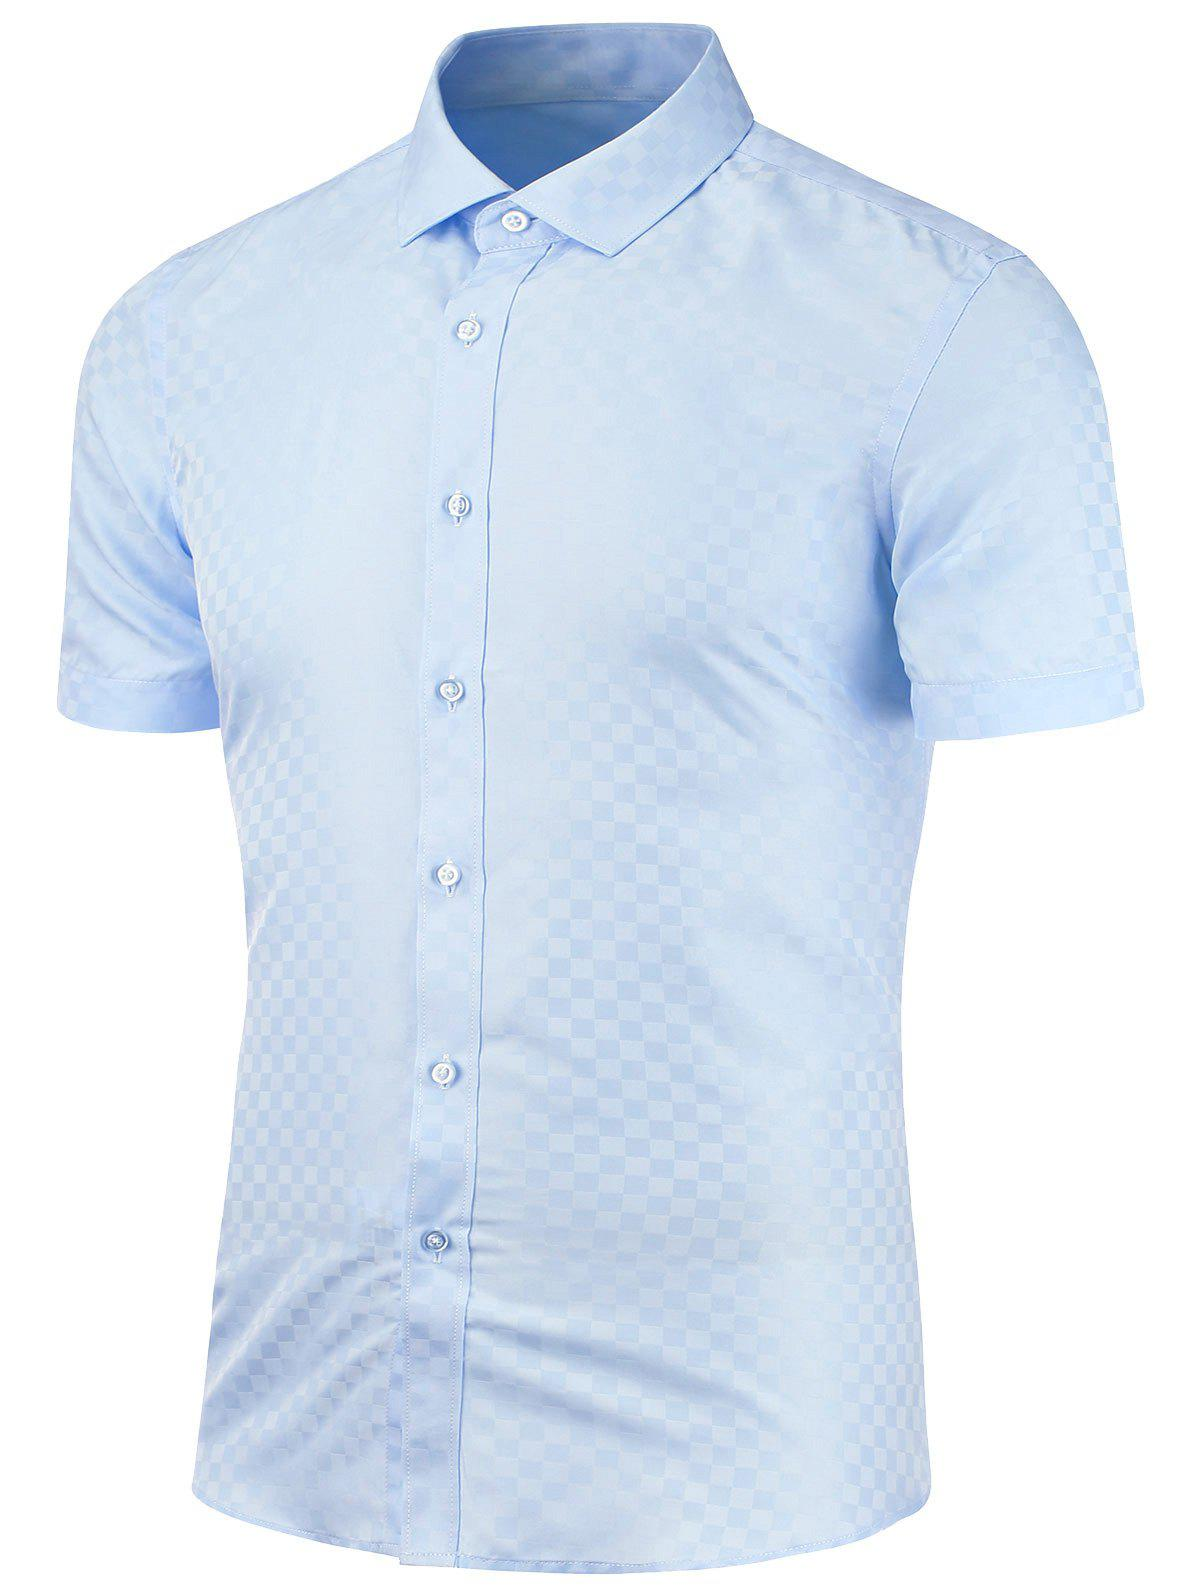 Slim Fit Short Sleeve Shirt